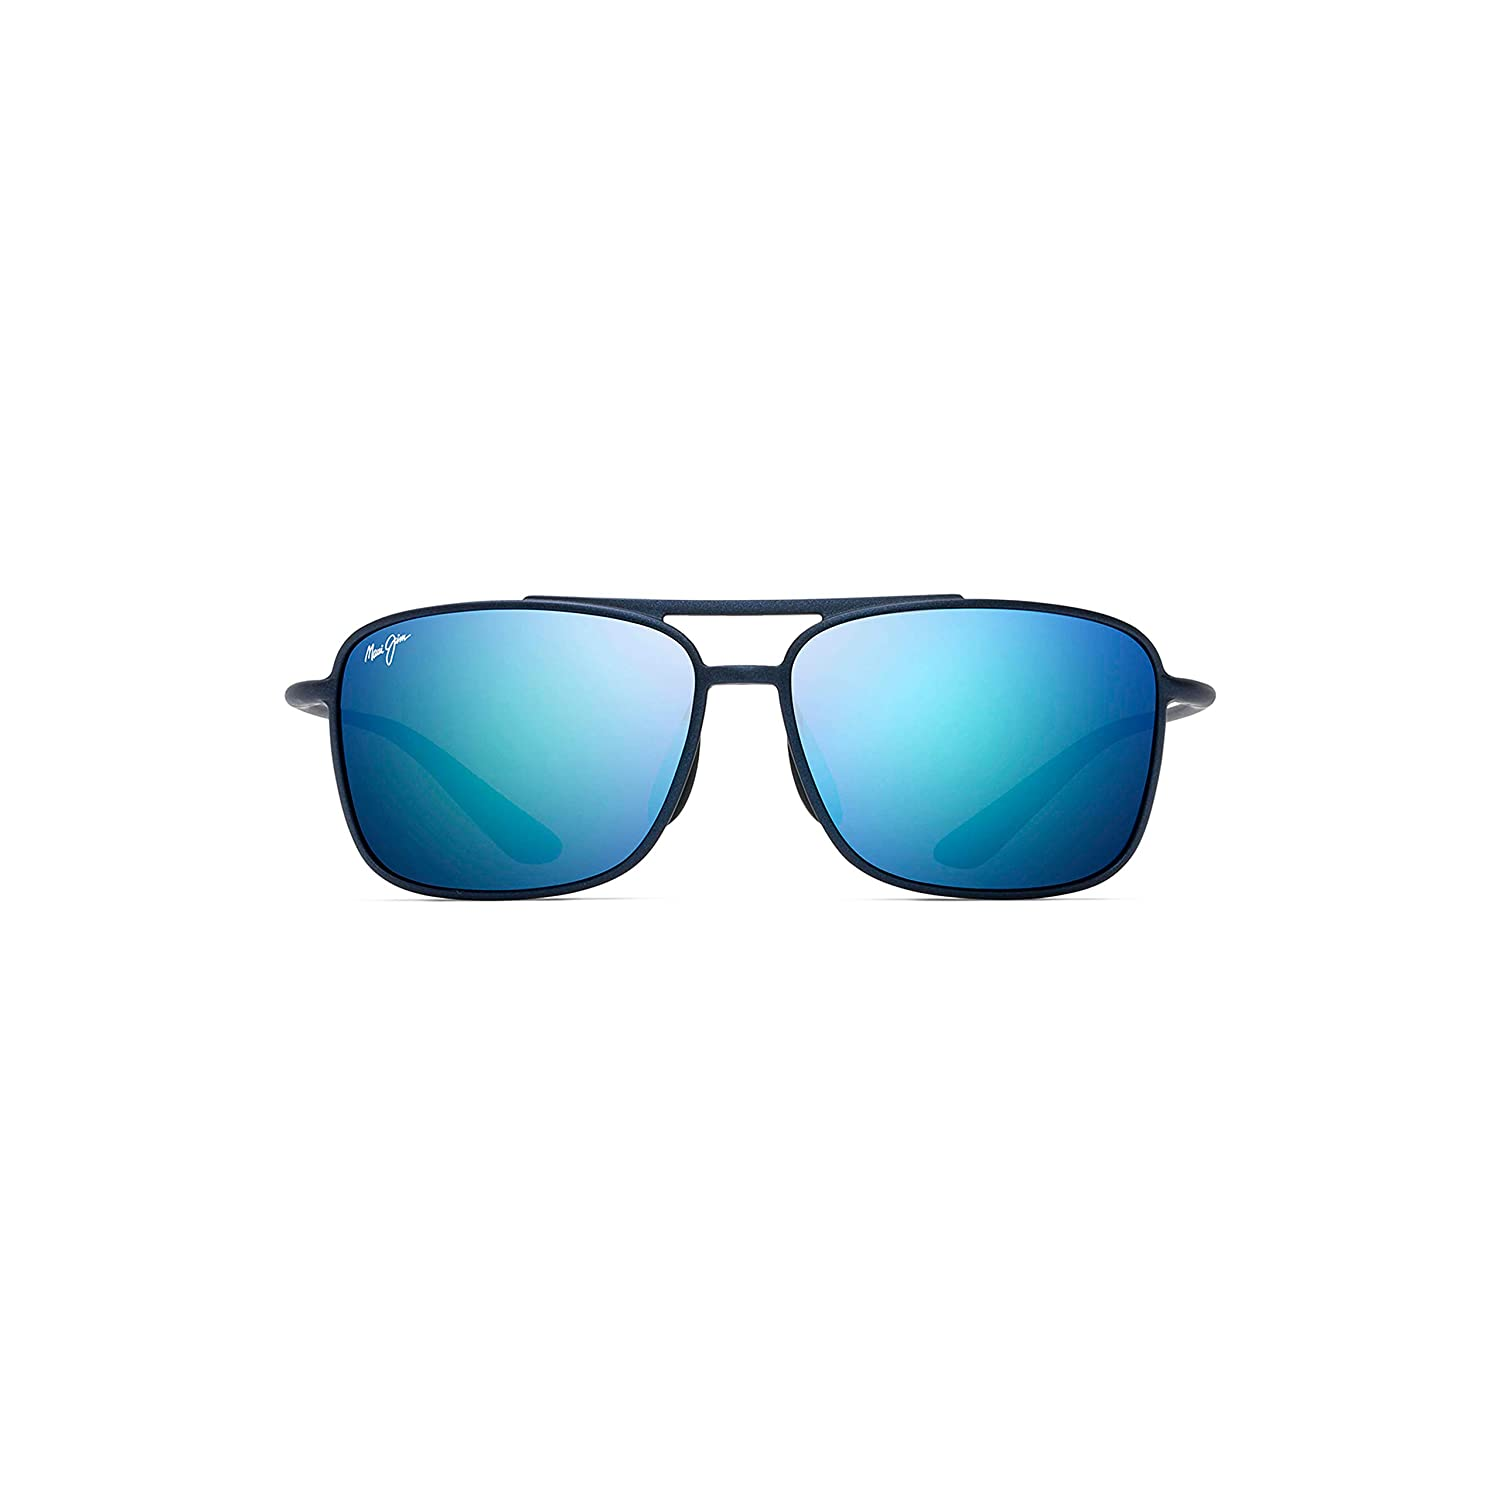 74fc4be105 Amazon.com  Maui Jim Kaupo Gap B437-03M Matte Blue Frame Blue Hawaii  Polarized Lenses  Maui Jim  Clothing